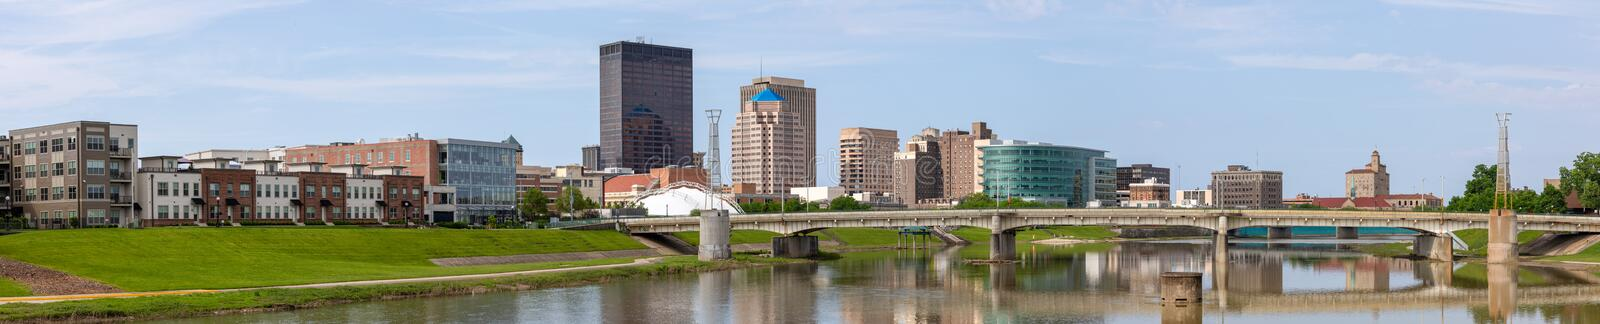 Dayton CityScape. Dayton, City in the state of Ohio, United States of American, as seen from Deeds Point Metropark stock photos